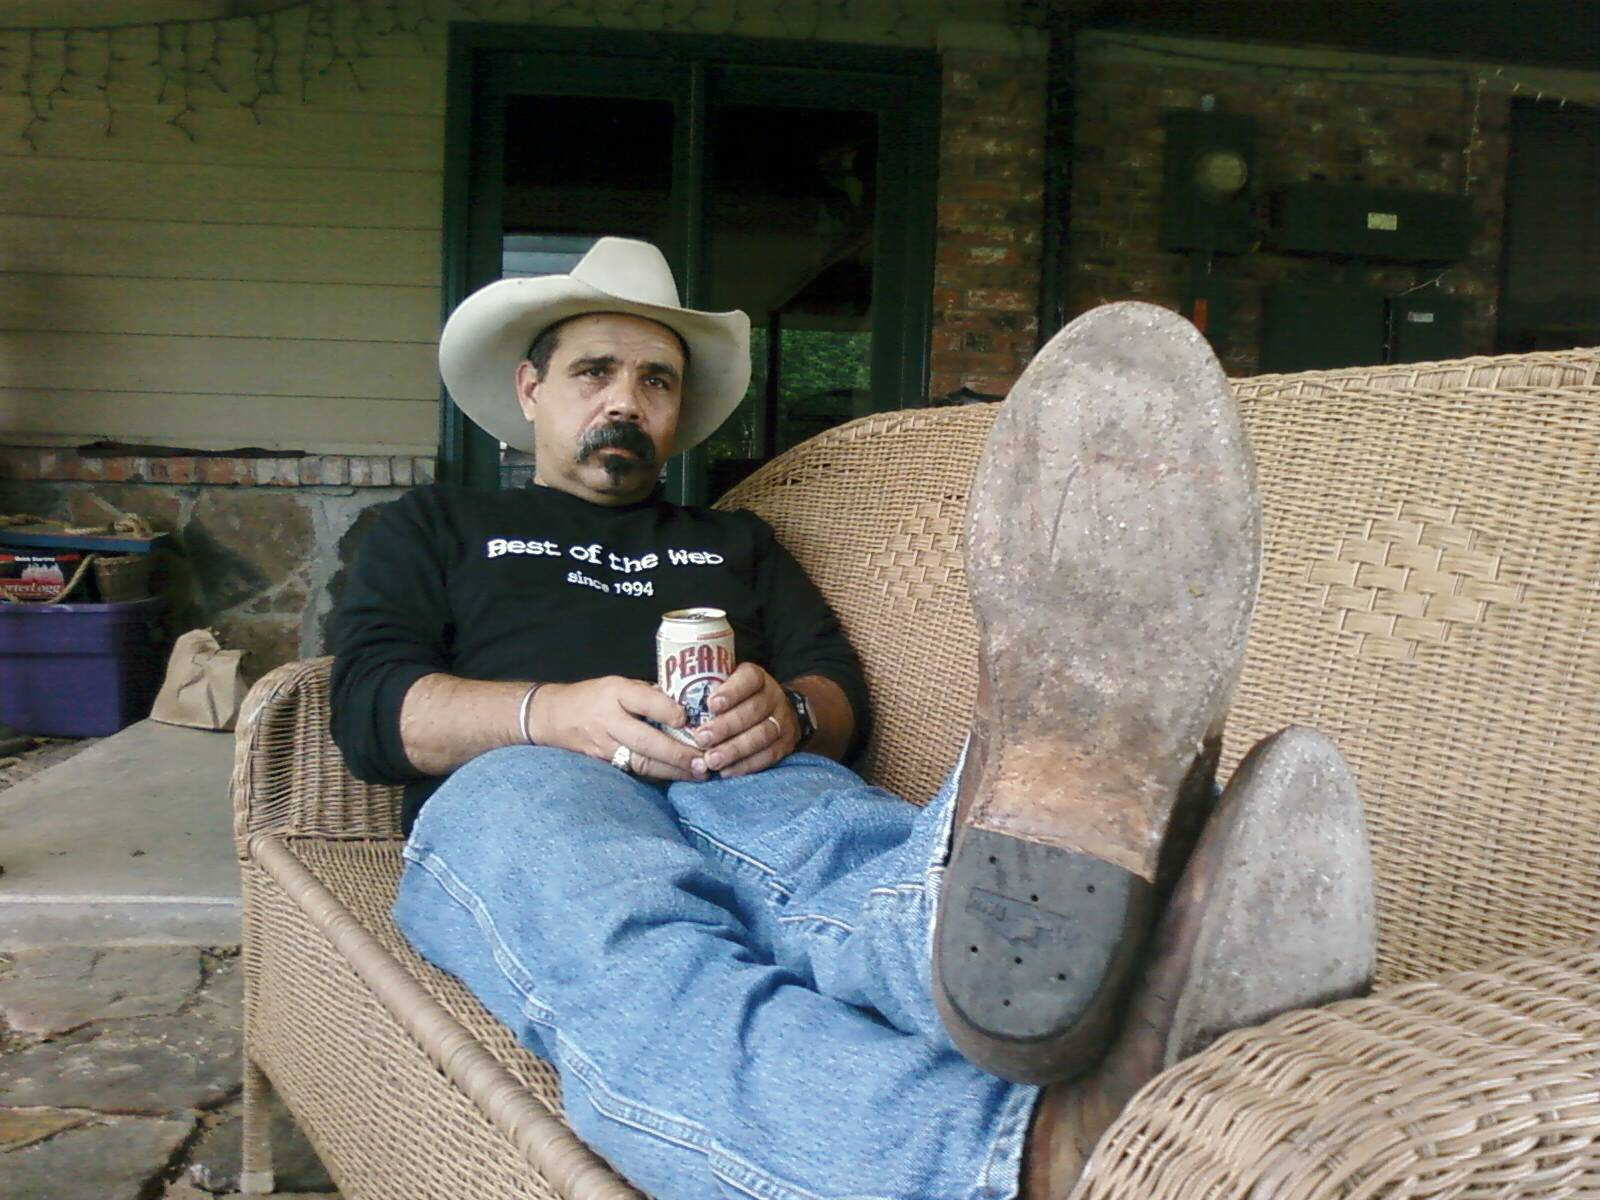 Author engages in new recreational activity